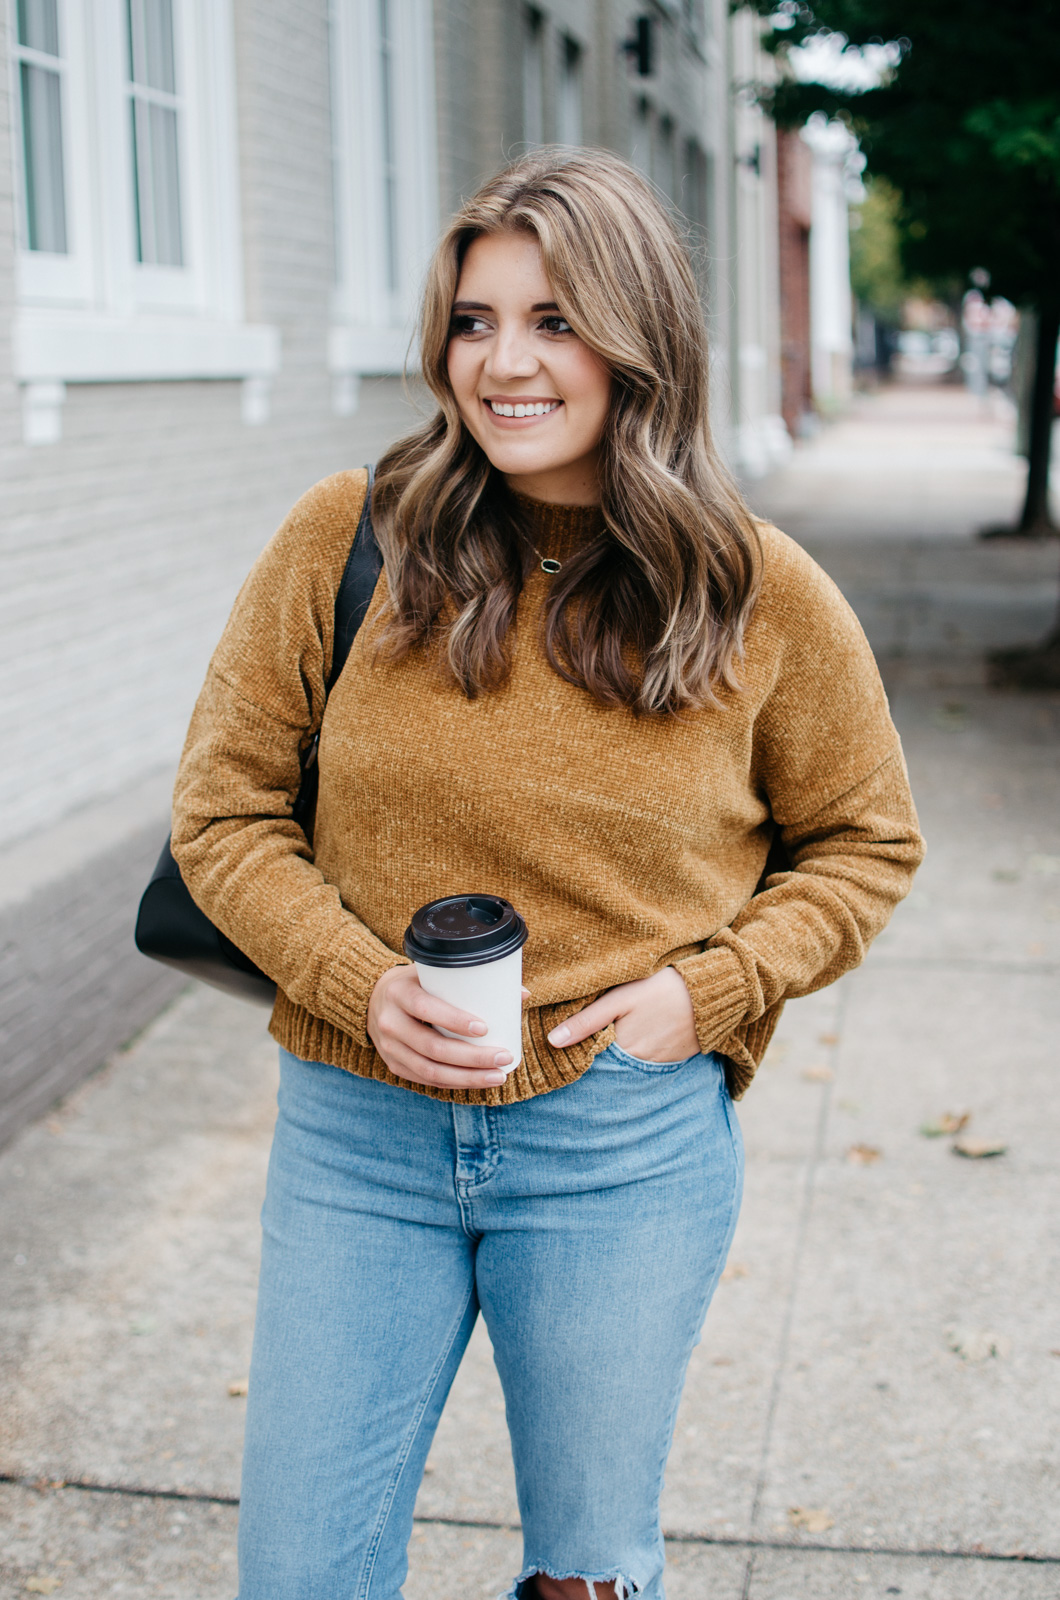 fall 2017 outfits - how to wear mom jeans | See more trendy fall outfits at bylaurenm.com!